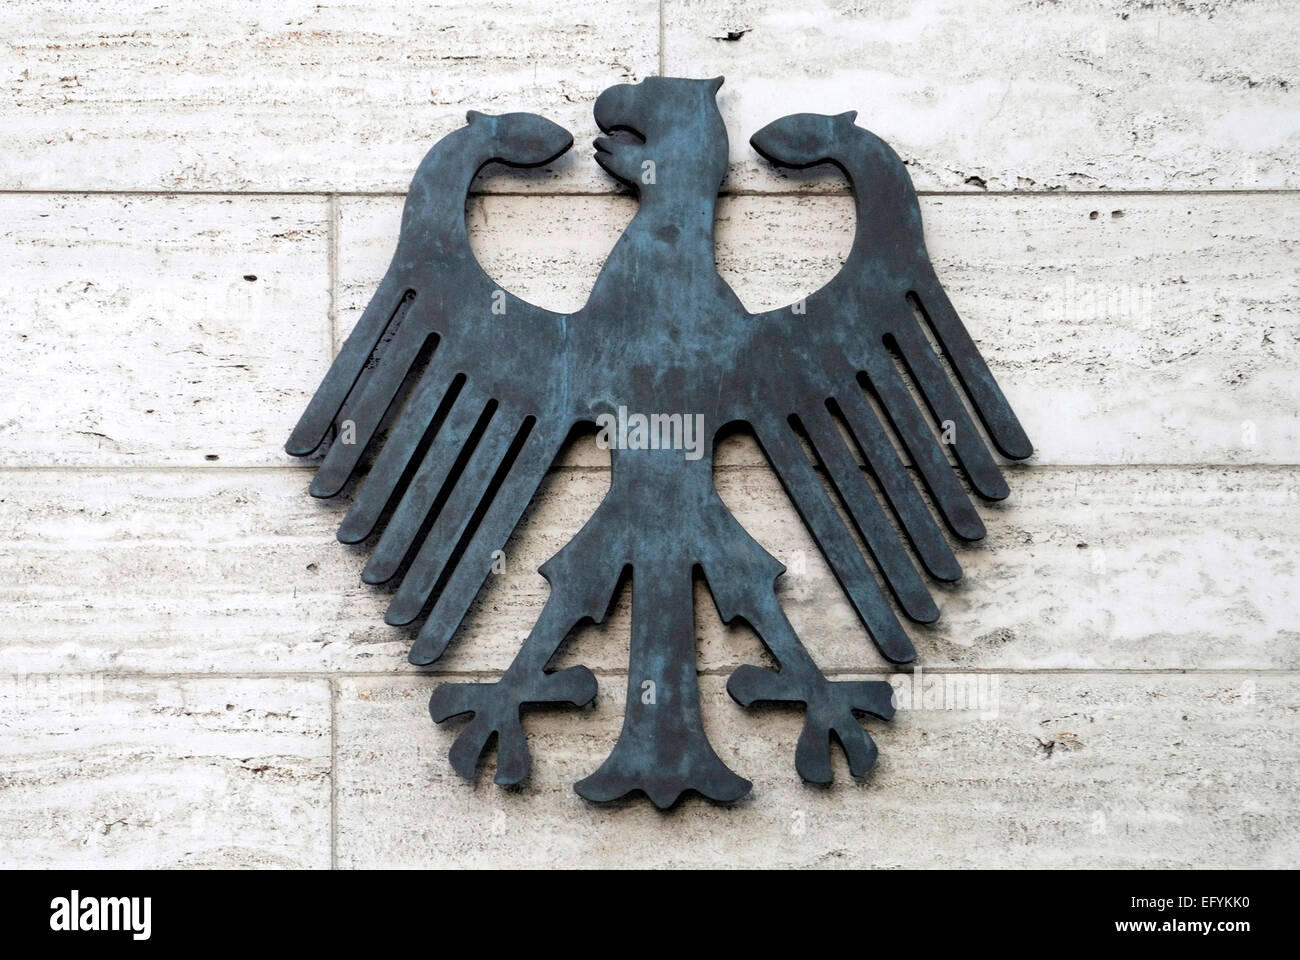 Federation eagle at the receipt of the Foreign Office of the Federal Republic of Germany on the Werderschen Markt - Stock Image